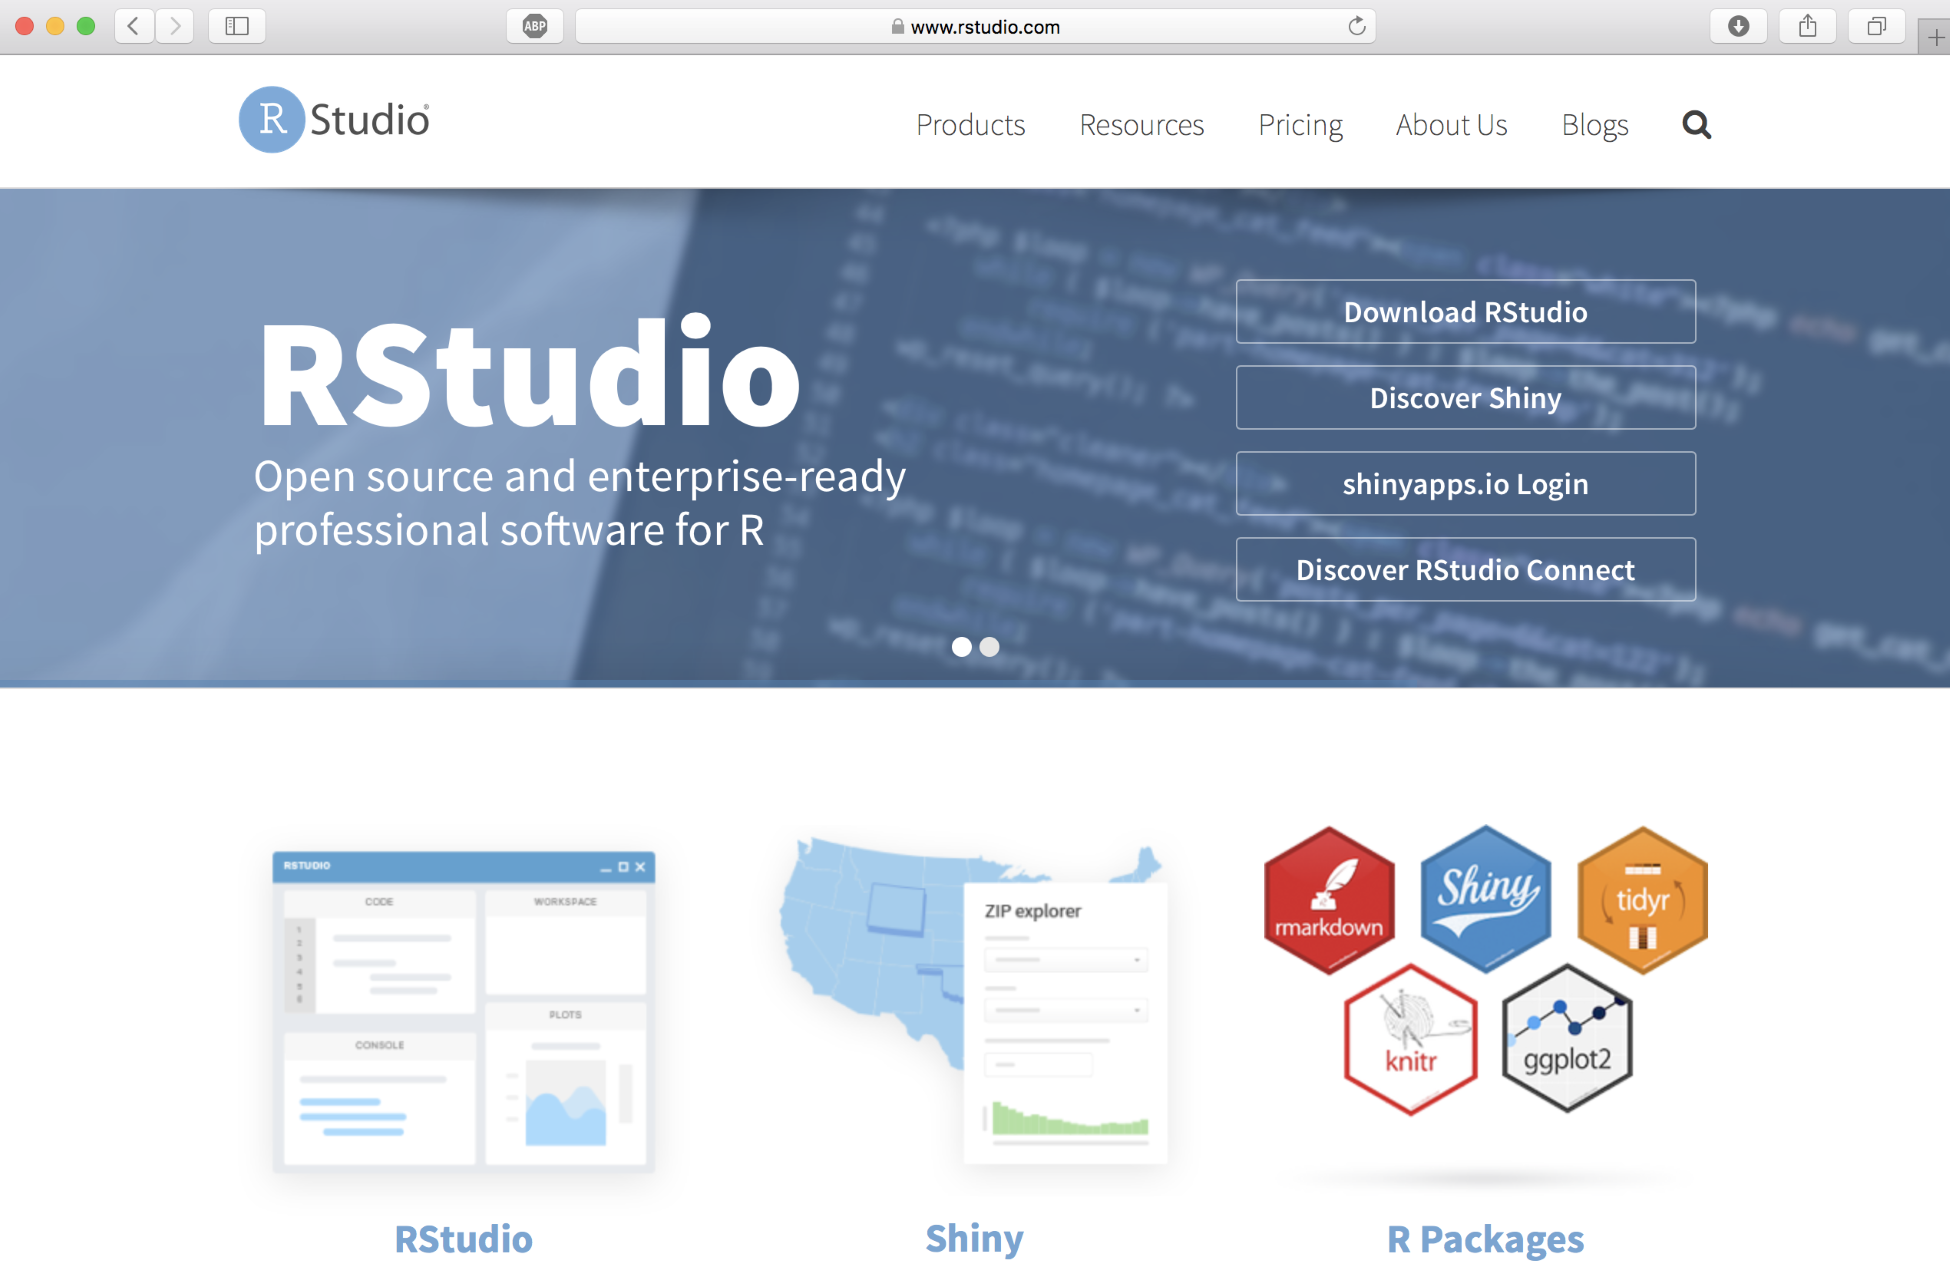 f5b5d8437b5 Click on Products in the top menu and select RStudio to download and  install the software. Download the open source ...